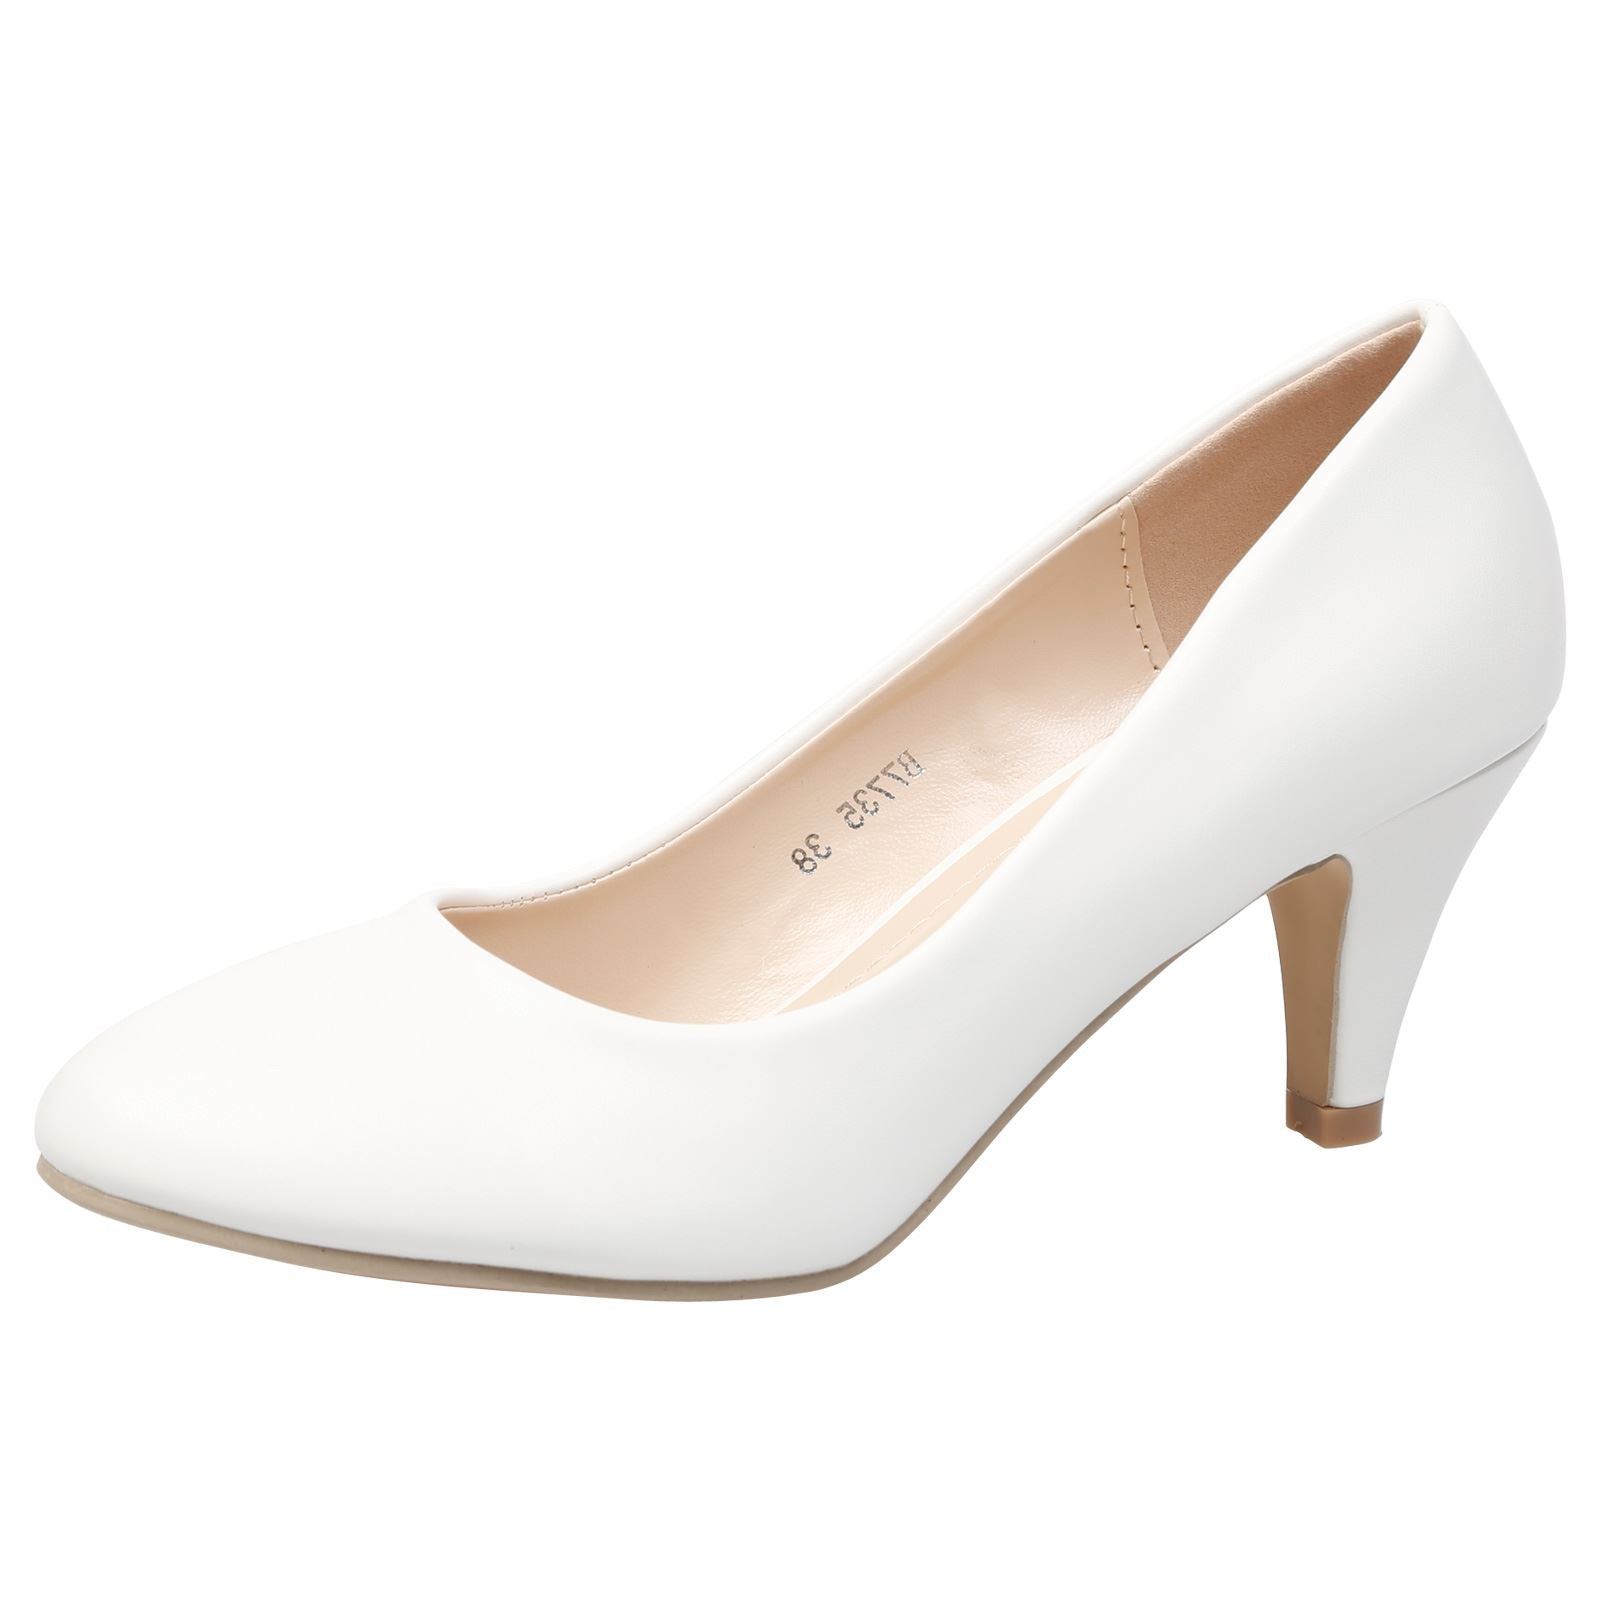 Leona Mid Heel Court Shoes in White Faux Leather